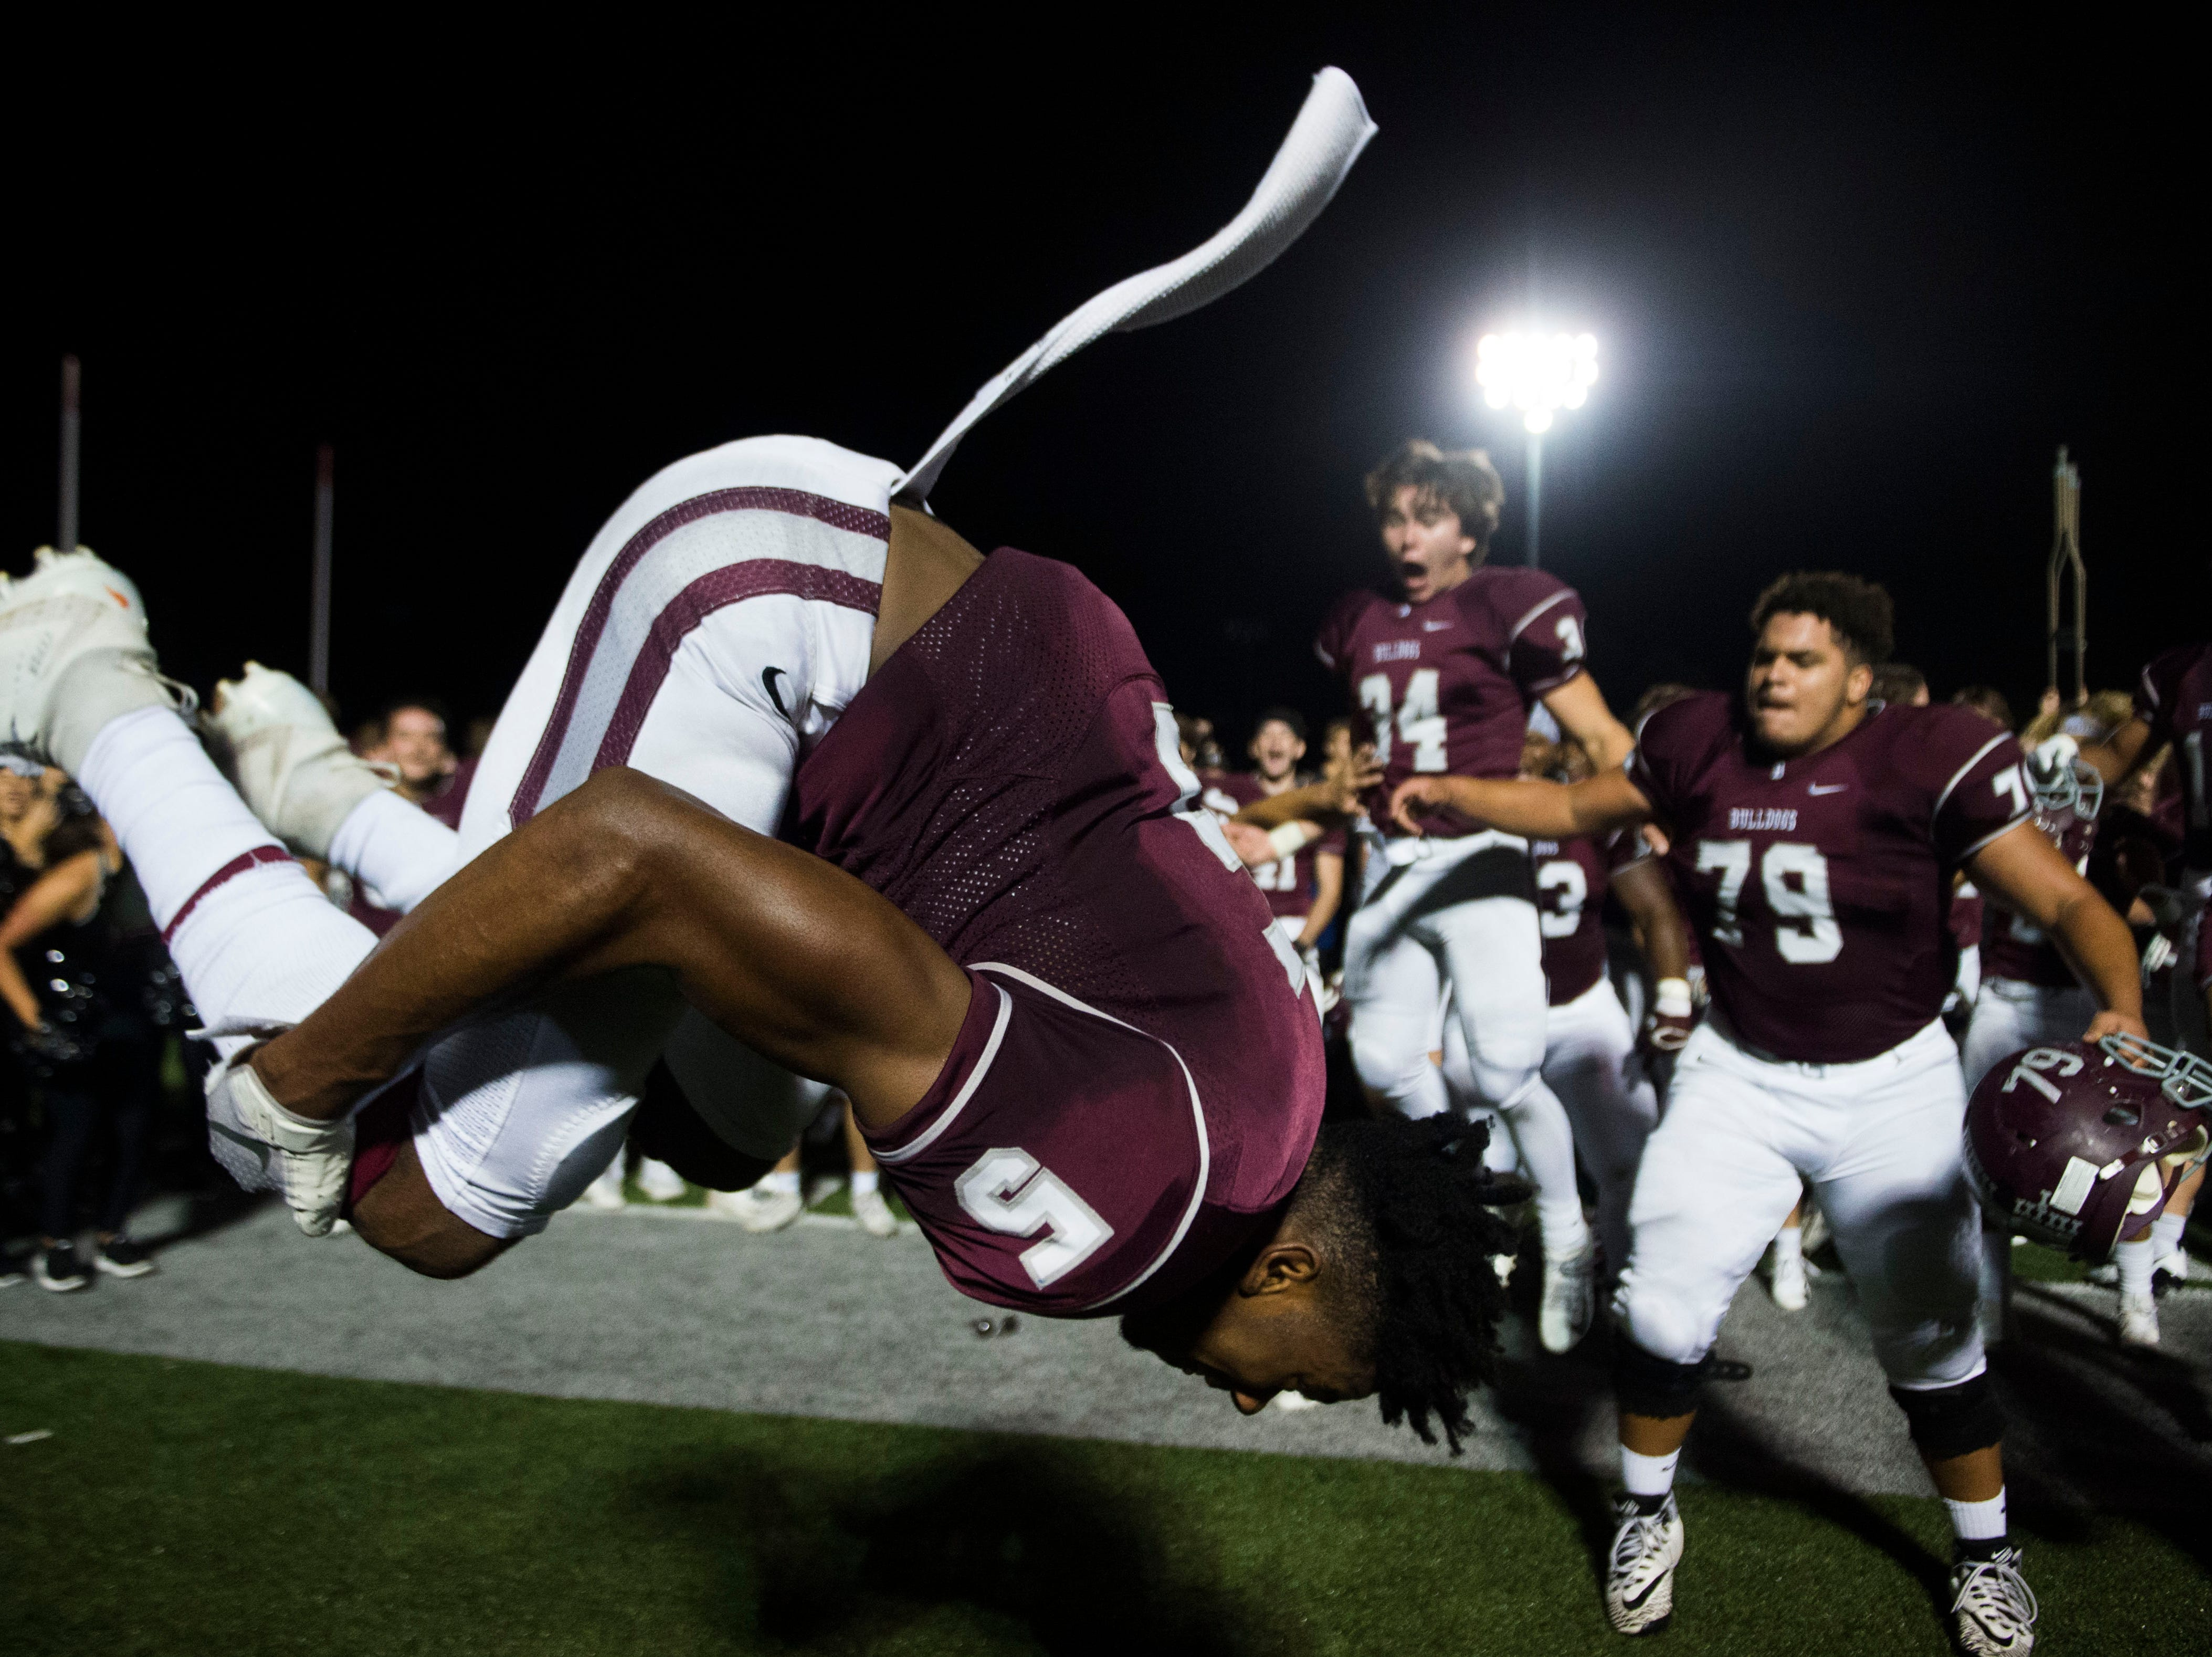 Bearden's Kahlil  Abdullah (5) does a flip in celebration after a game between Bearden and Farragut at Bearden Thursday, Oct. 11, 2018. Bearden took down Farragut 17-13.